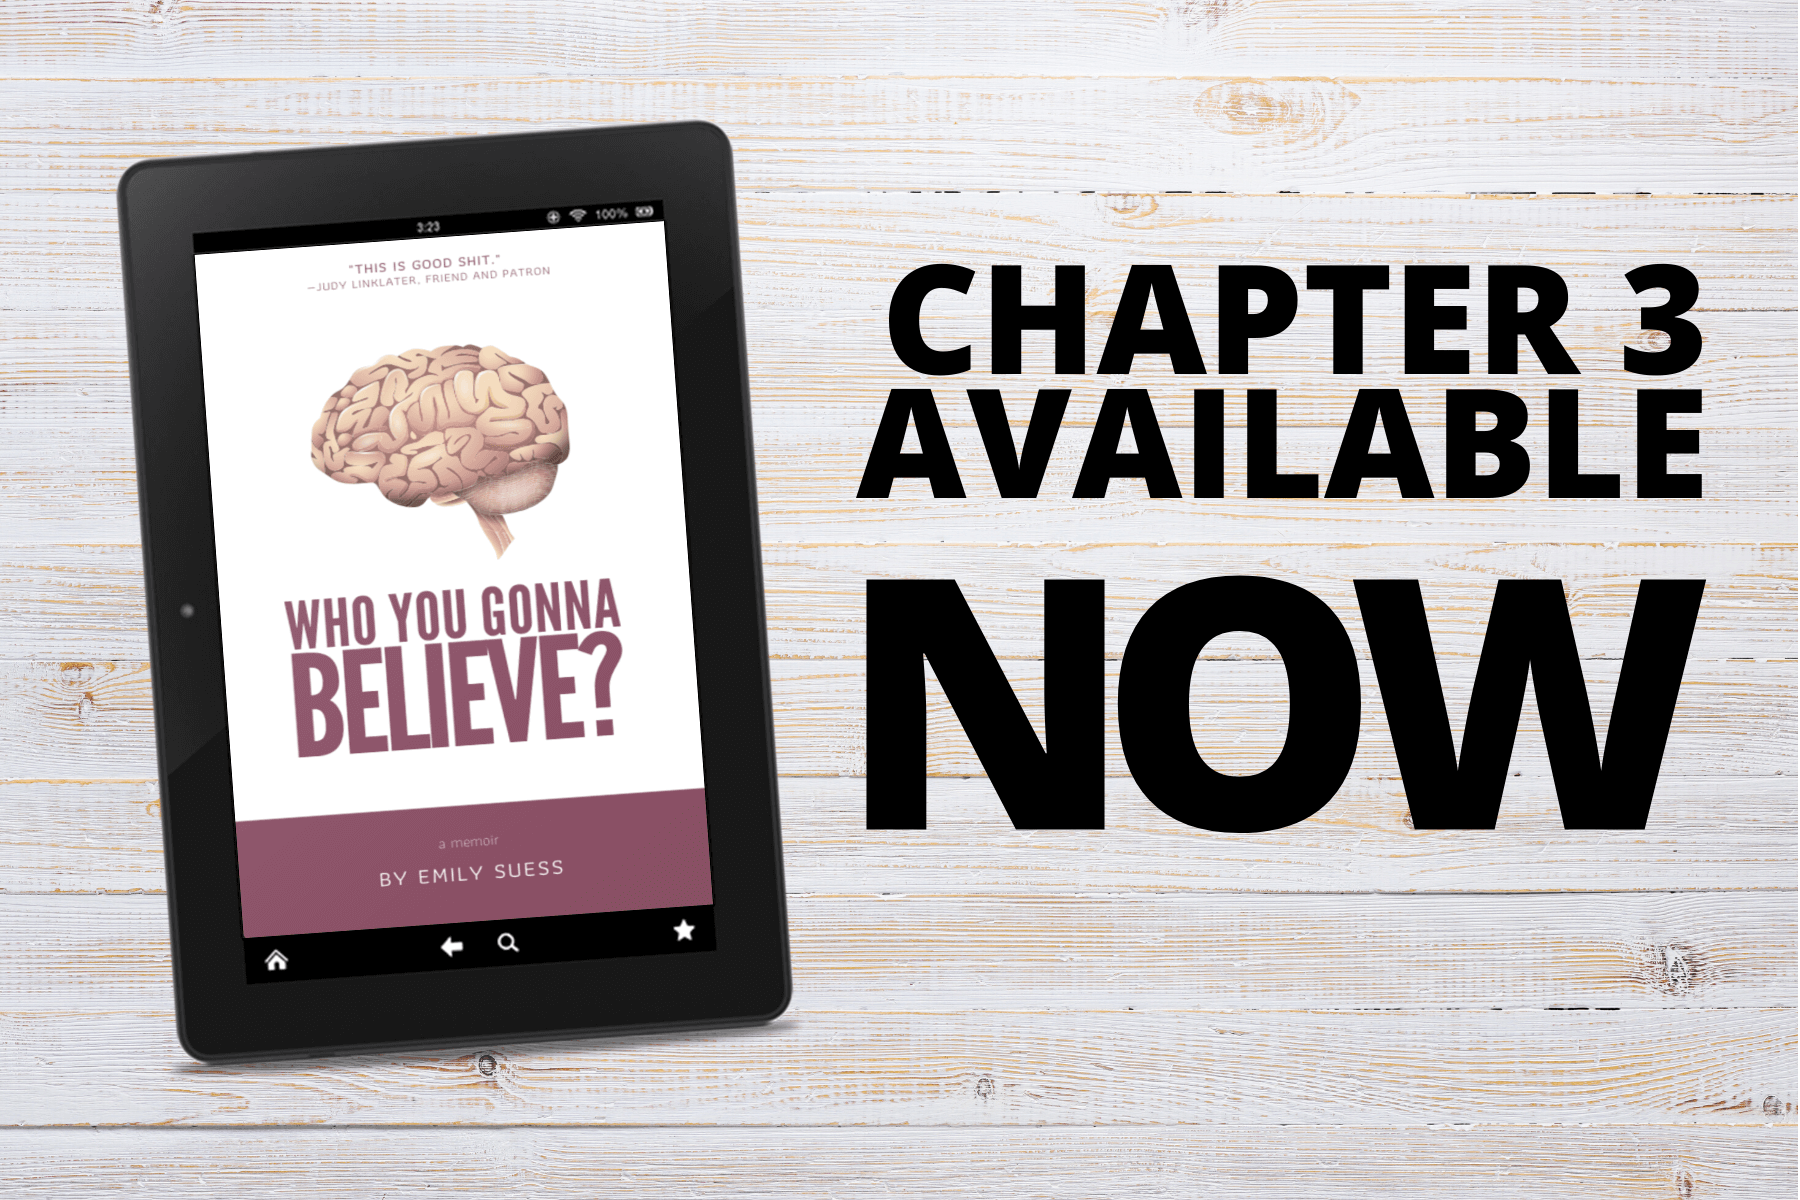 Who You Gonna Believe Chapter 3 Now Available on Patreon